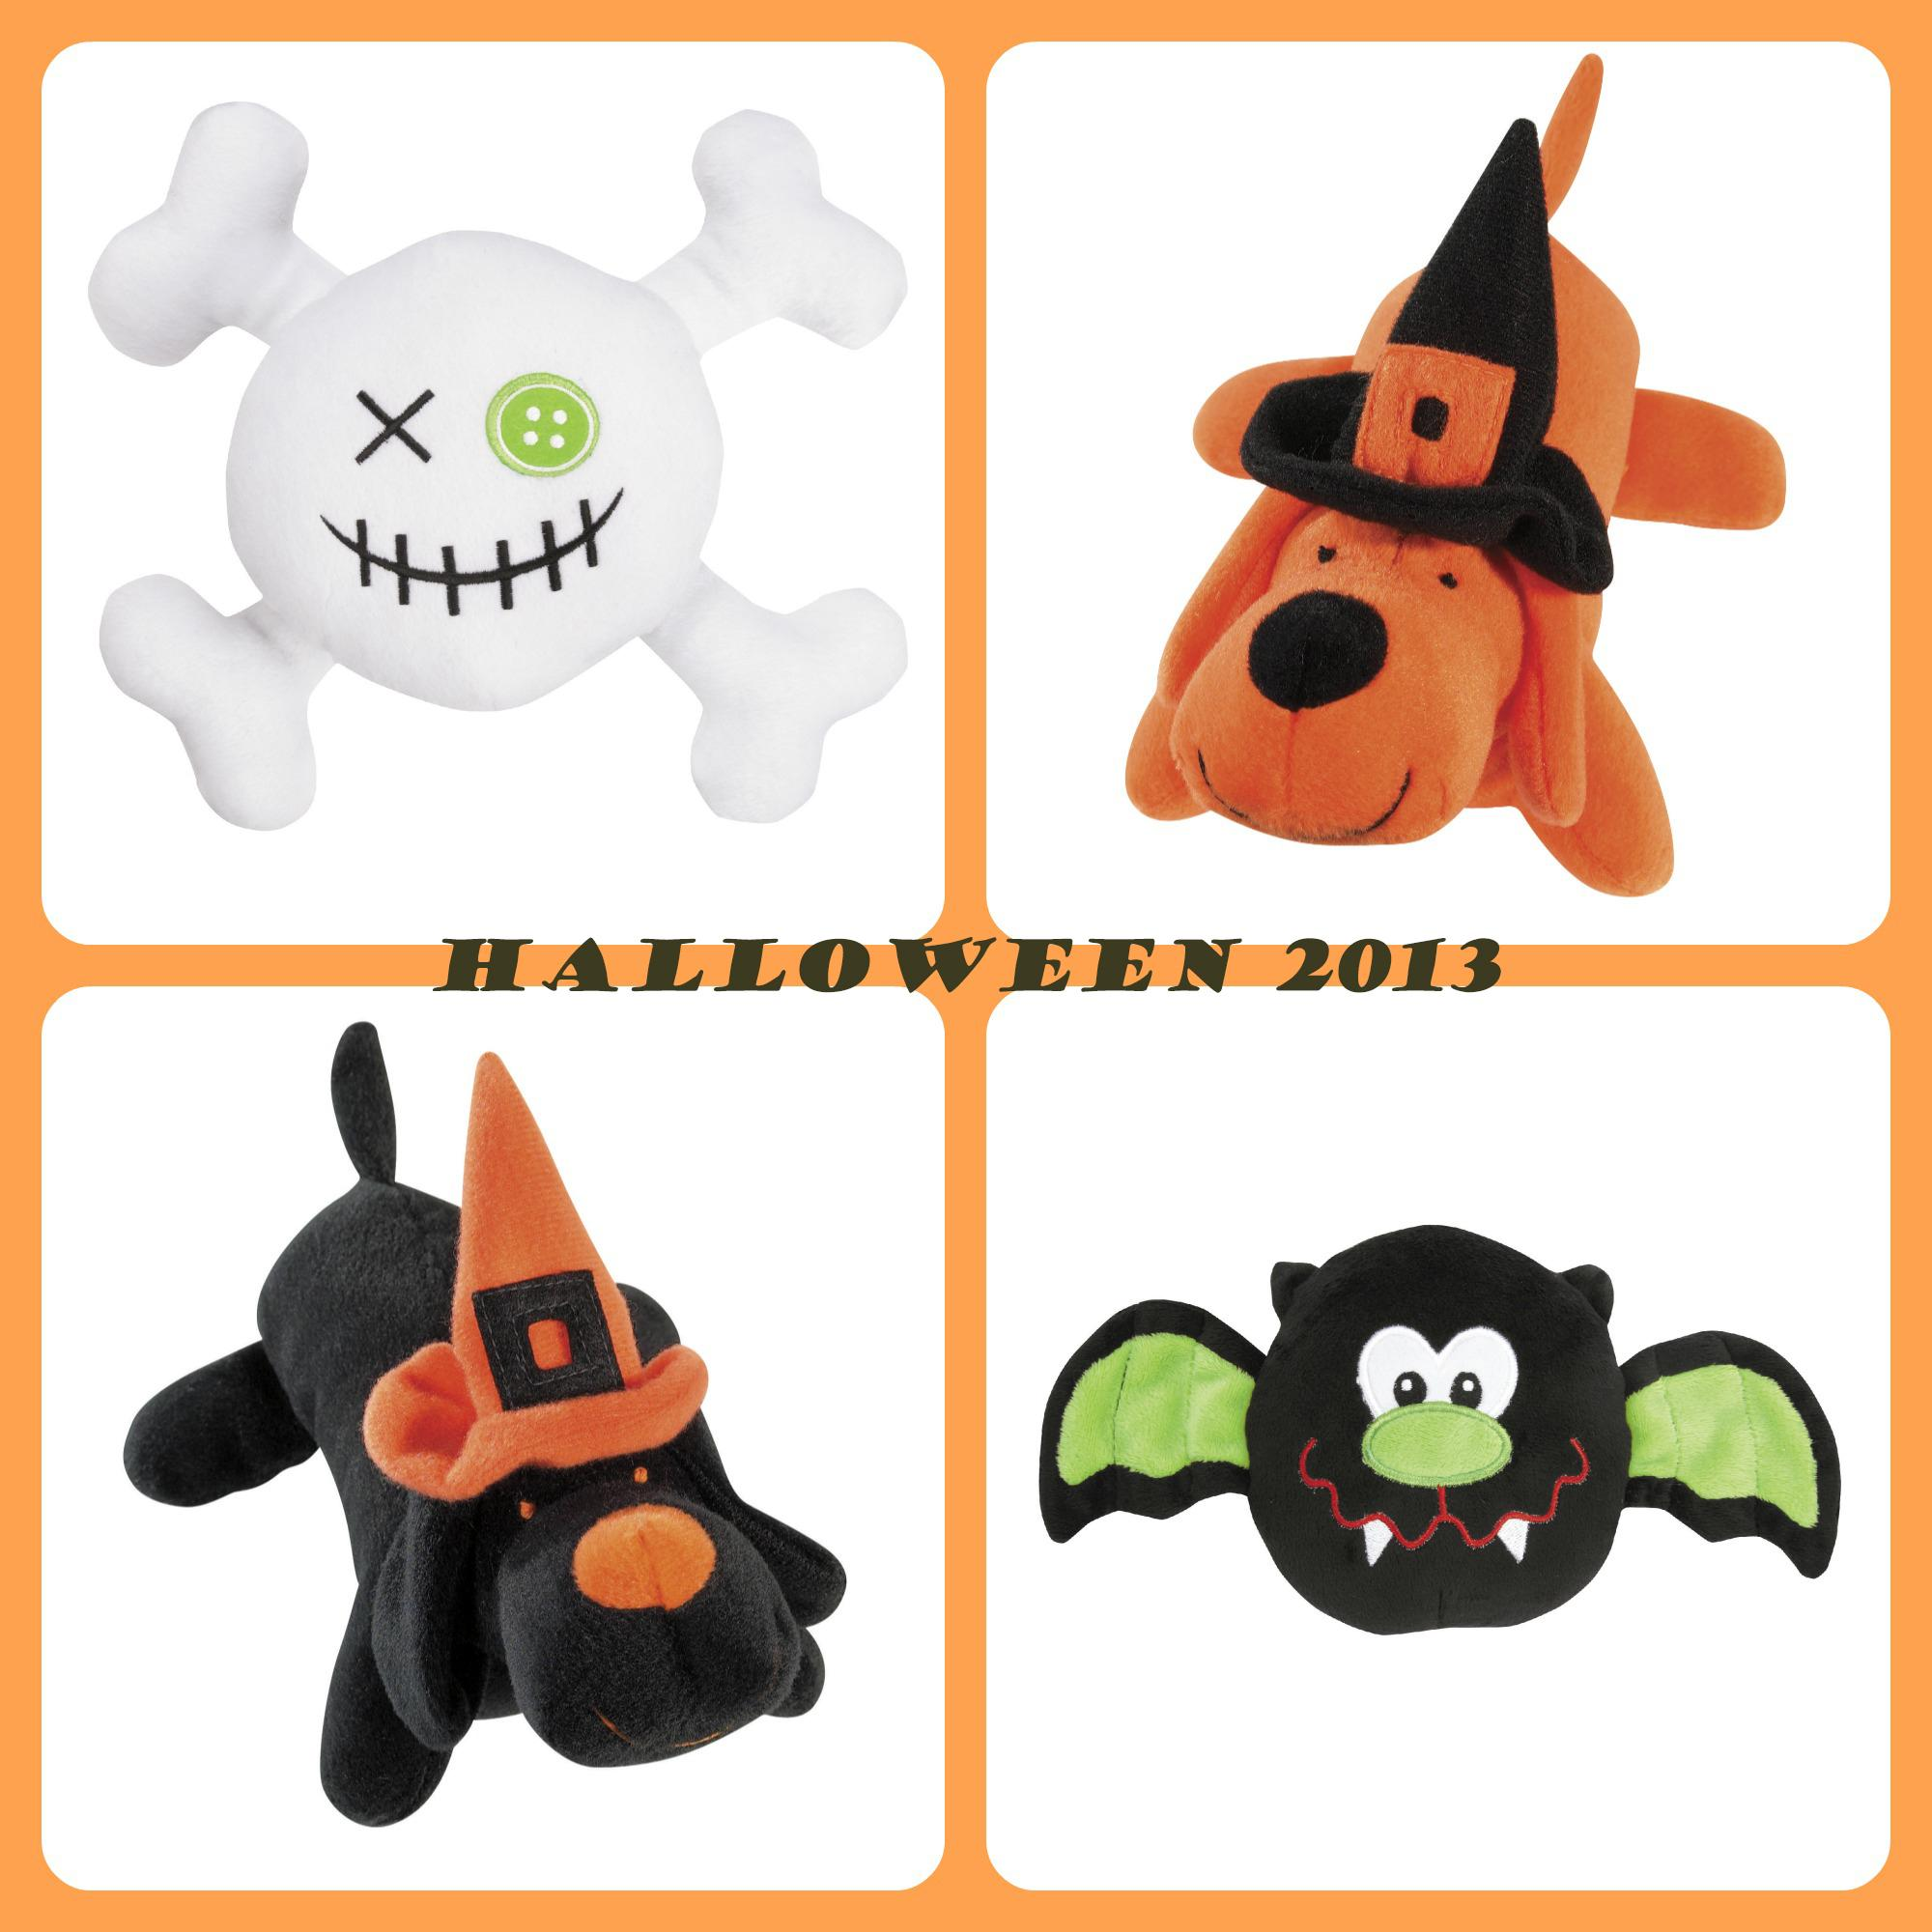 Halloween 2013 - 20% DISCOUNT OFFER!